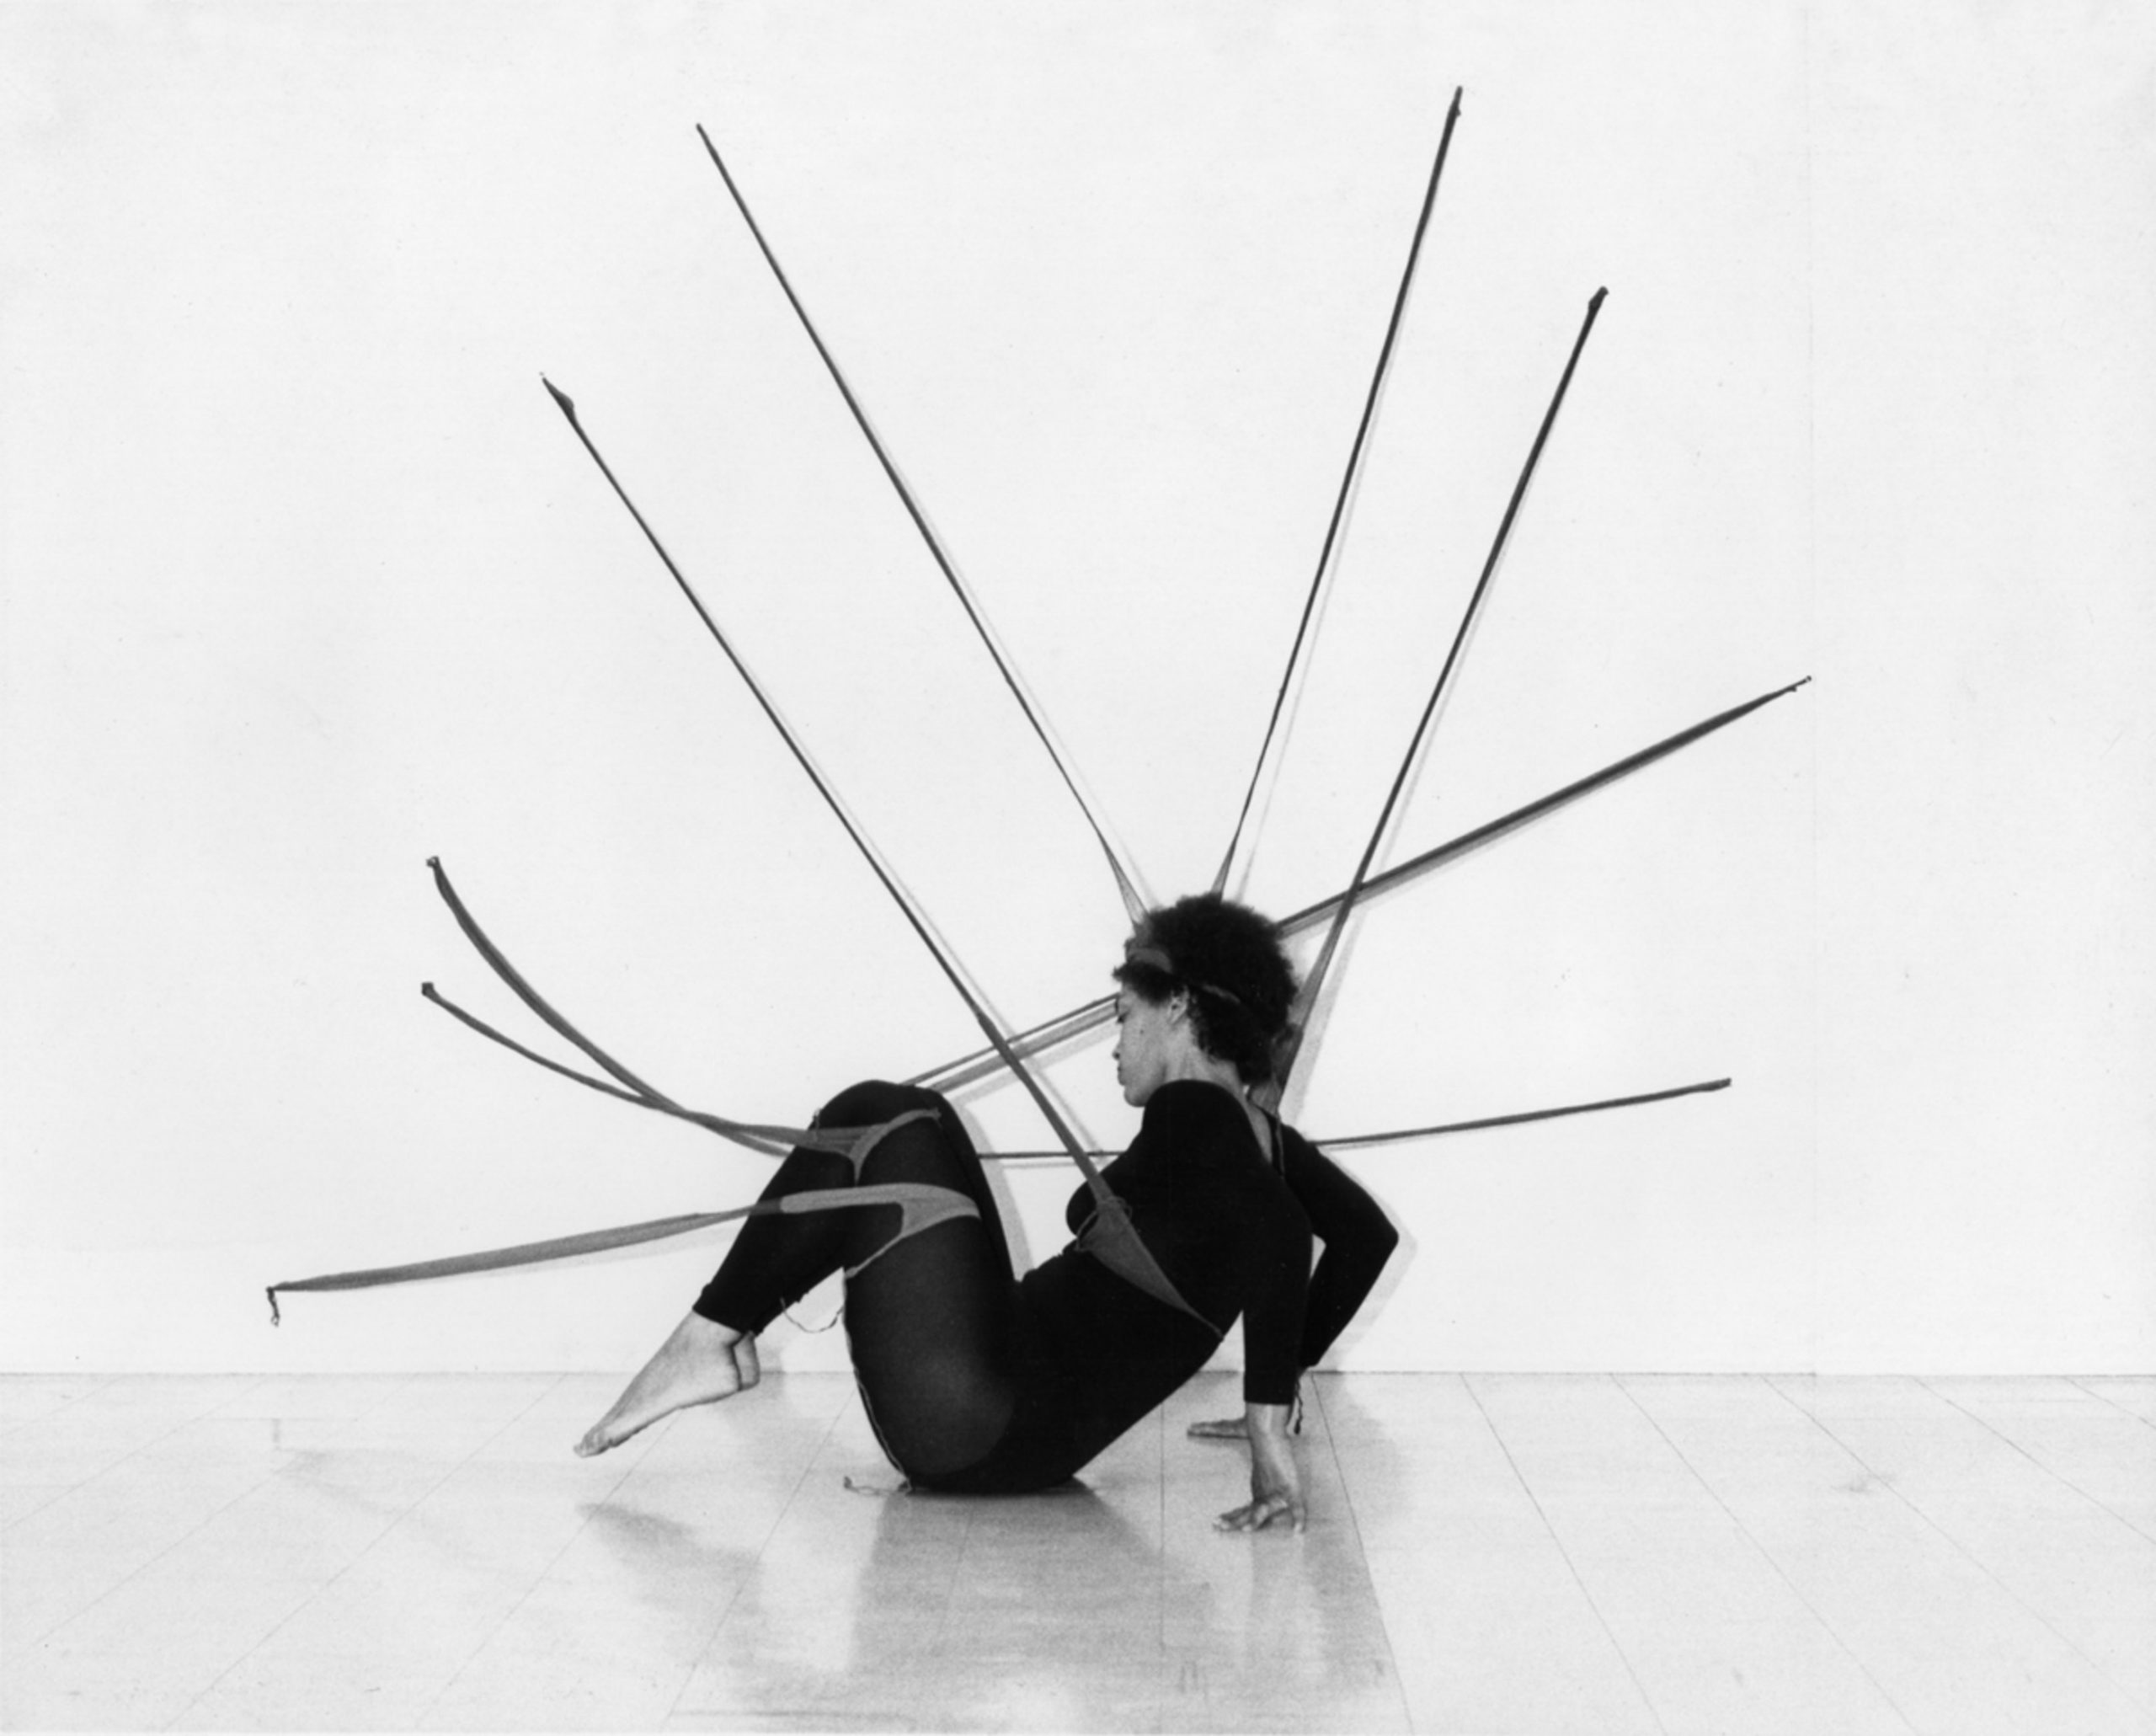 Senga Nengudi, Performance Piece, 1978. Black and white photograph. Photo by Harmon Outlaw. Courtesy of Lévy Gorvy Gallery, New York and Thomas Erben Gallery, New York.